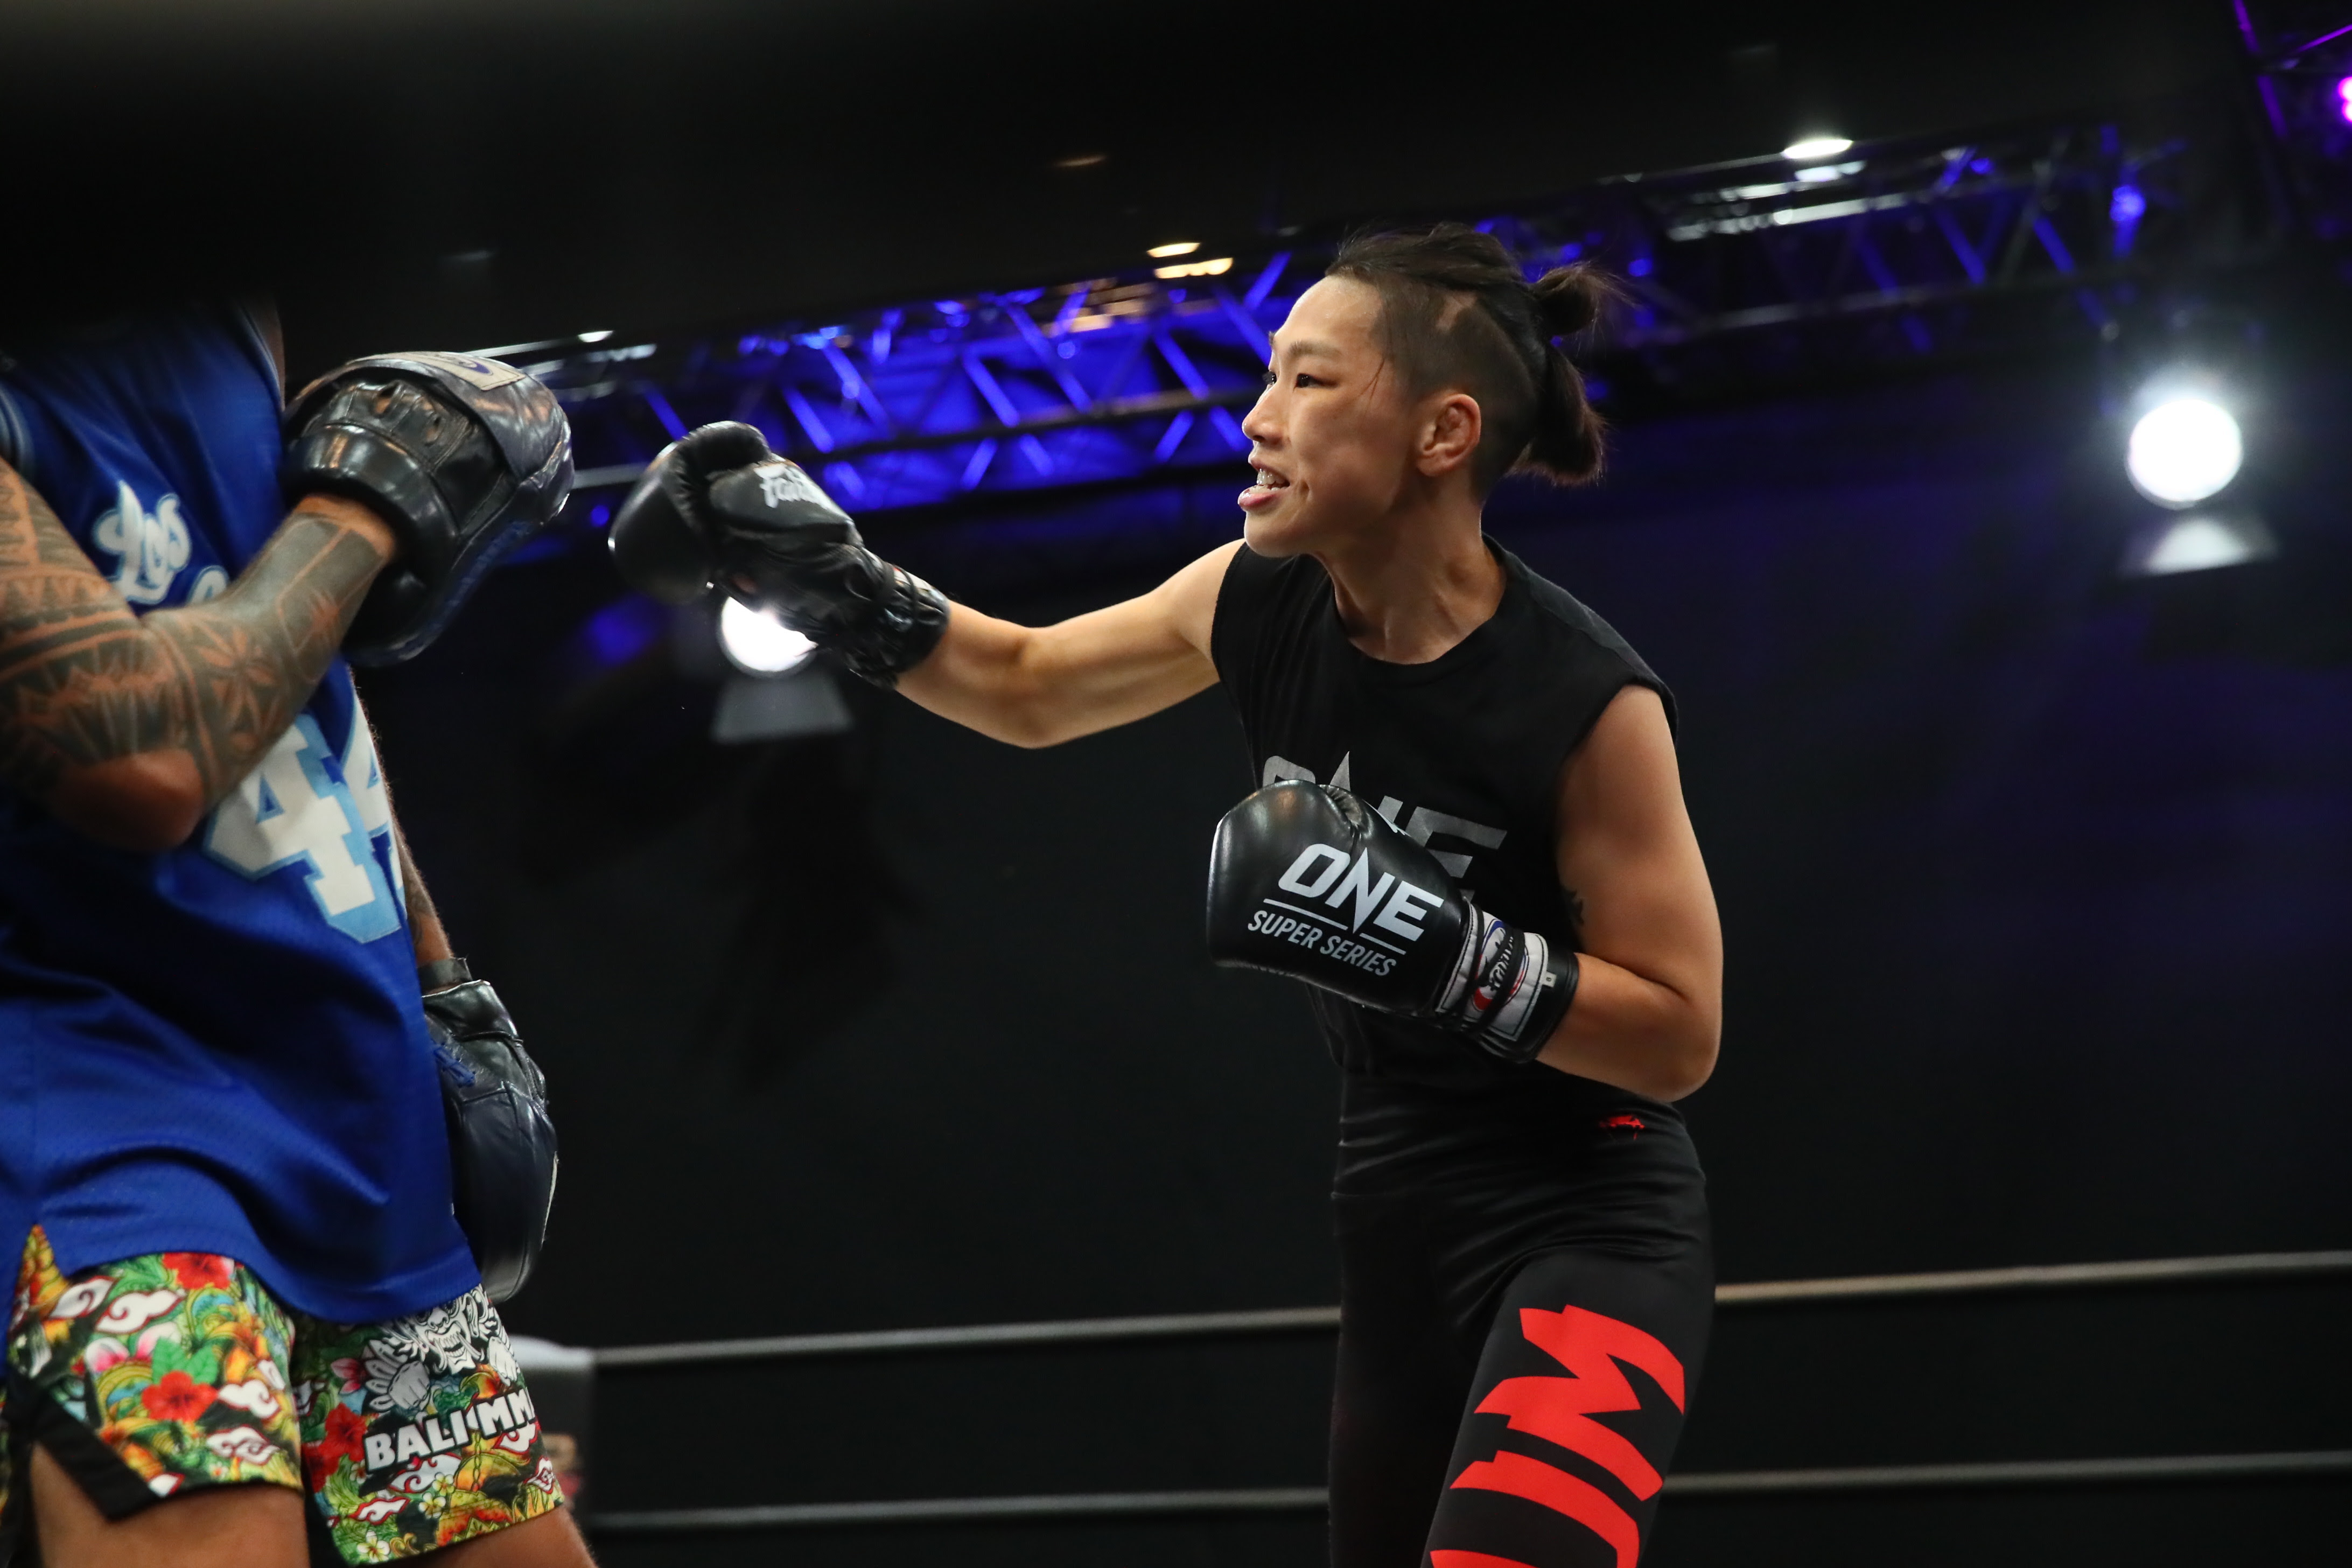 ONE CHAMPIONSHIP ATHLETES SHOWCASE SKILLS AT ONE MARTIAL ARTS FAN FEST OPEN WORKOUT - ONE Championship